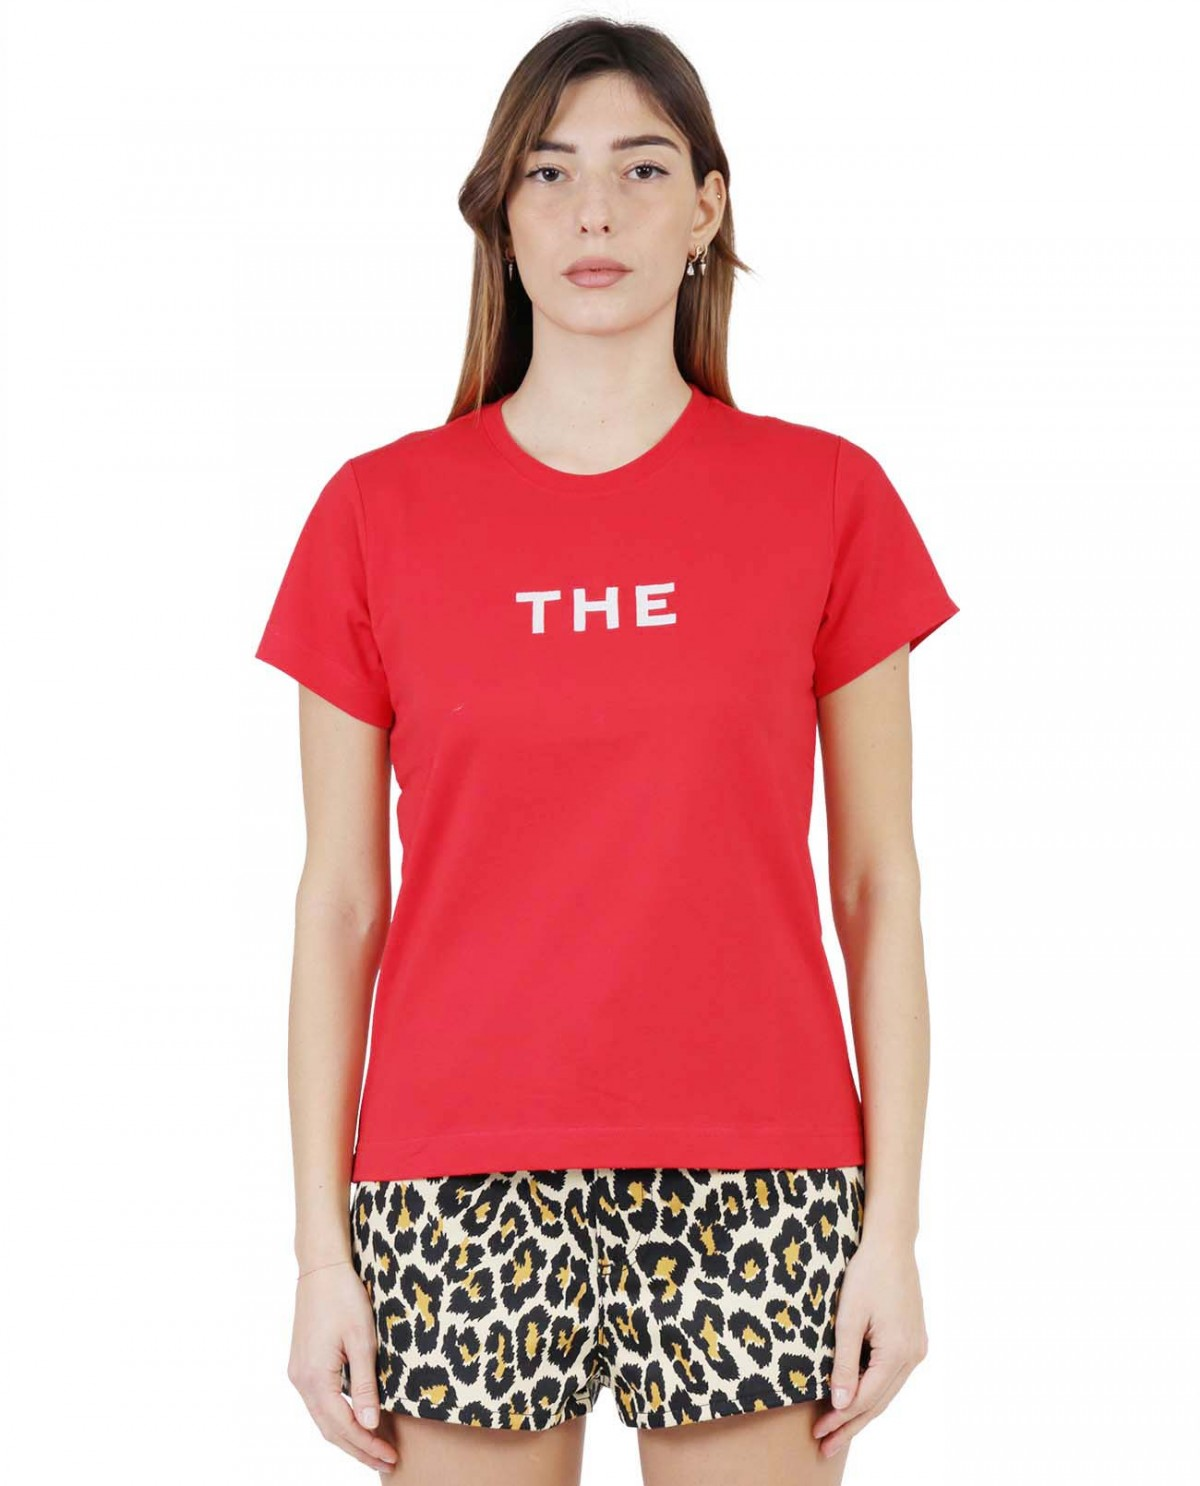 The Marc Jacobs red T-shirt